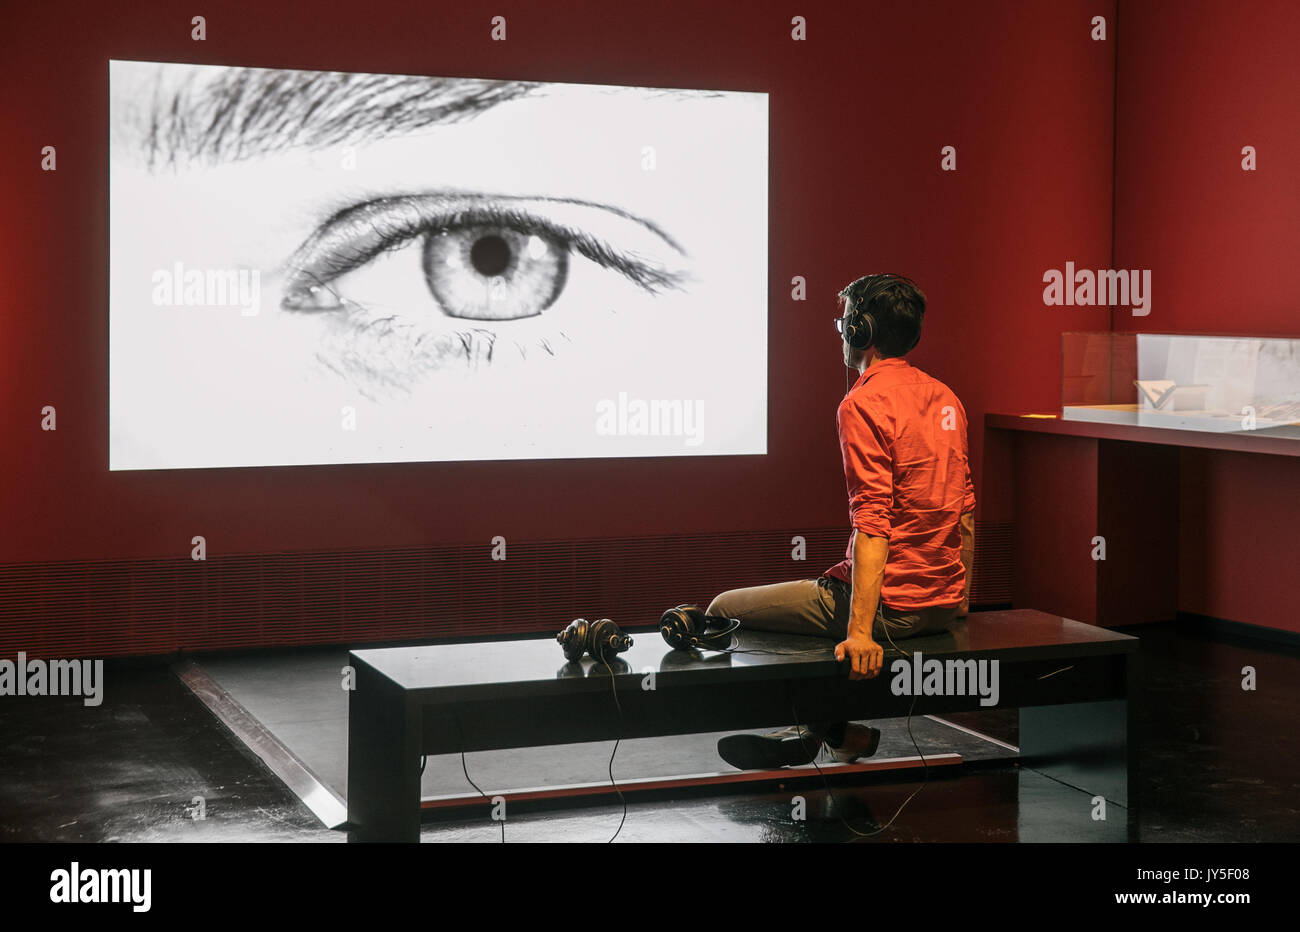 Dresden, Germany. 17th Aug, 2017. A man looking at the projection of an eye in an exhibition room of the new exhibition 'The face. A search for clues' ('Das Gesicht. Eine Spurensuche') in the German Hygiene Museum in Dresden, Germany, 17 August 2017. The exhibition takes place between 19 August 2017 and 25 February 2018. Photo: Oliver Killig/dpa-Zentralbild/dpa/Alamy Live News - Stock Image